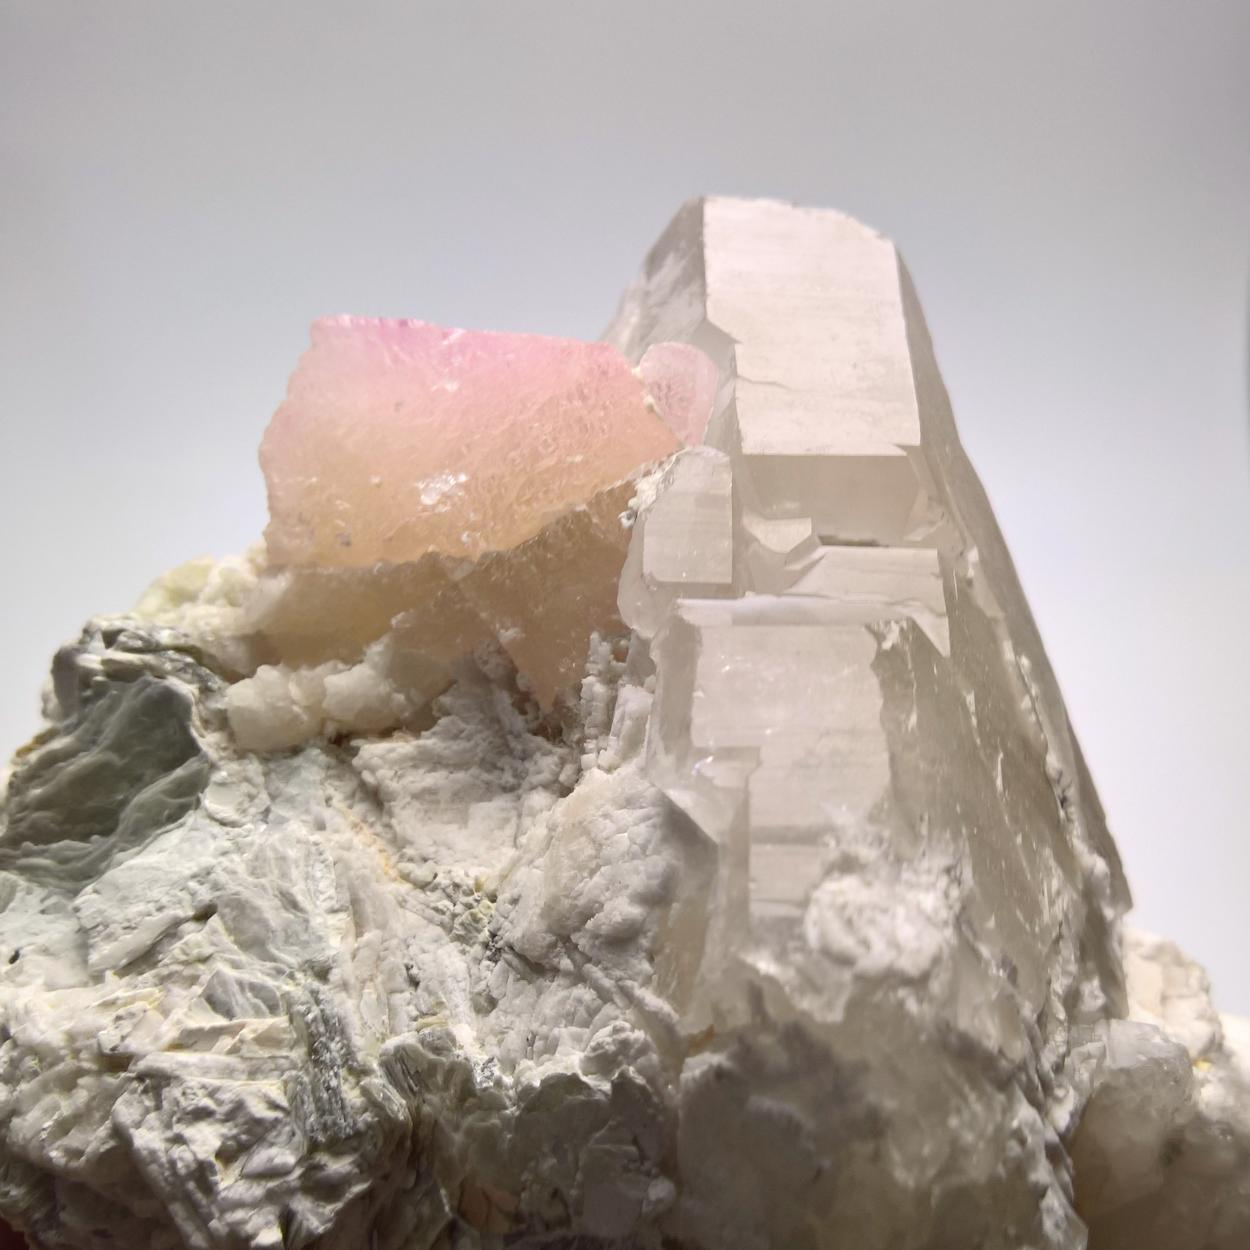 Kunzite With Quartz Albite & Muscovite